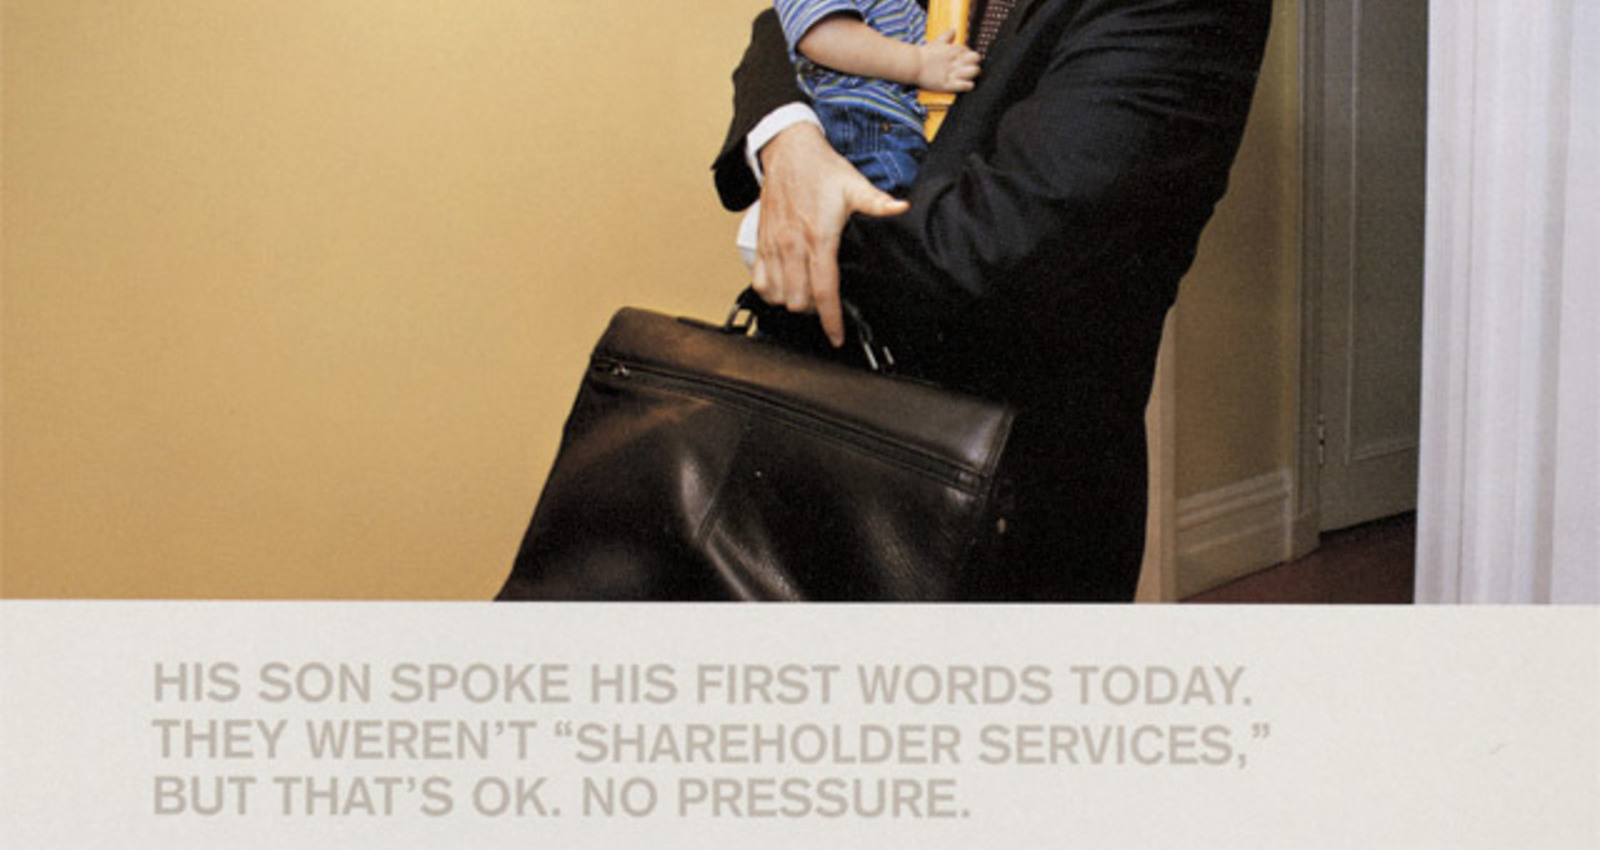 Son Spoke His First Words, Cold Call, Fish Named Escrow, Refreshing Series of Blinks, Discovers It's Saturday